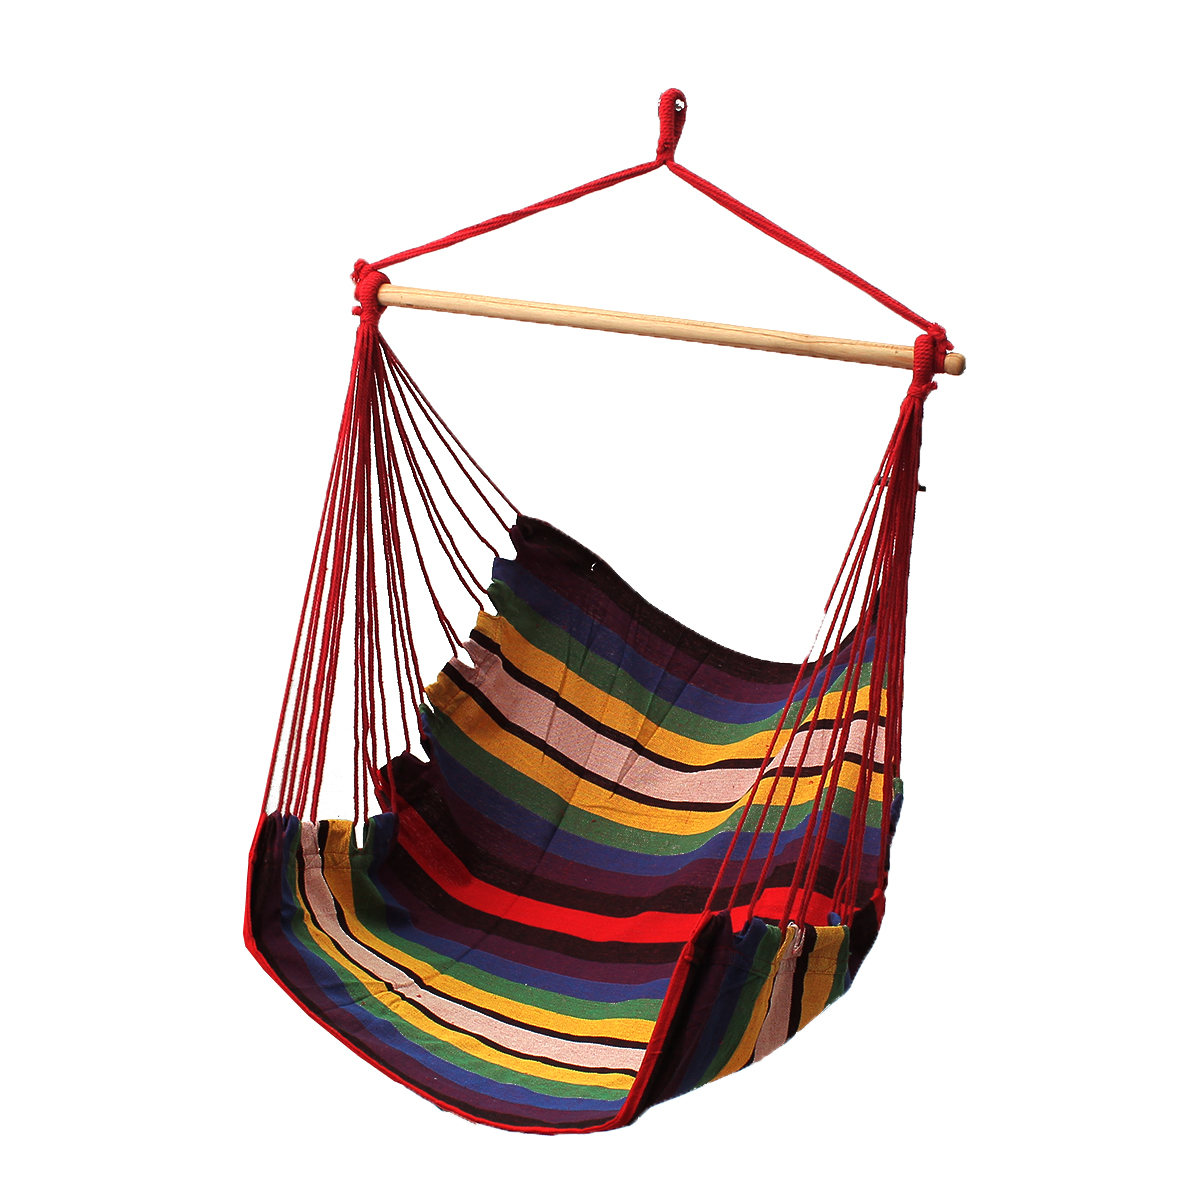 Swinging Chair Garden Patio Hanging Thicken Hammock Chair Indoor Outdoor